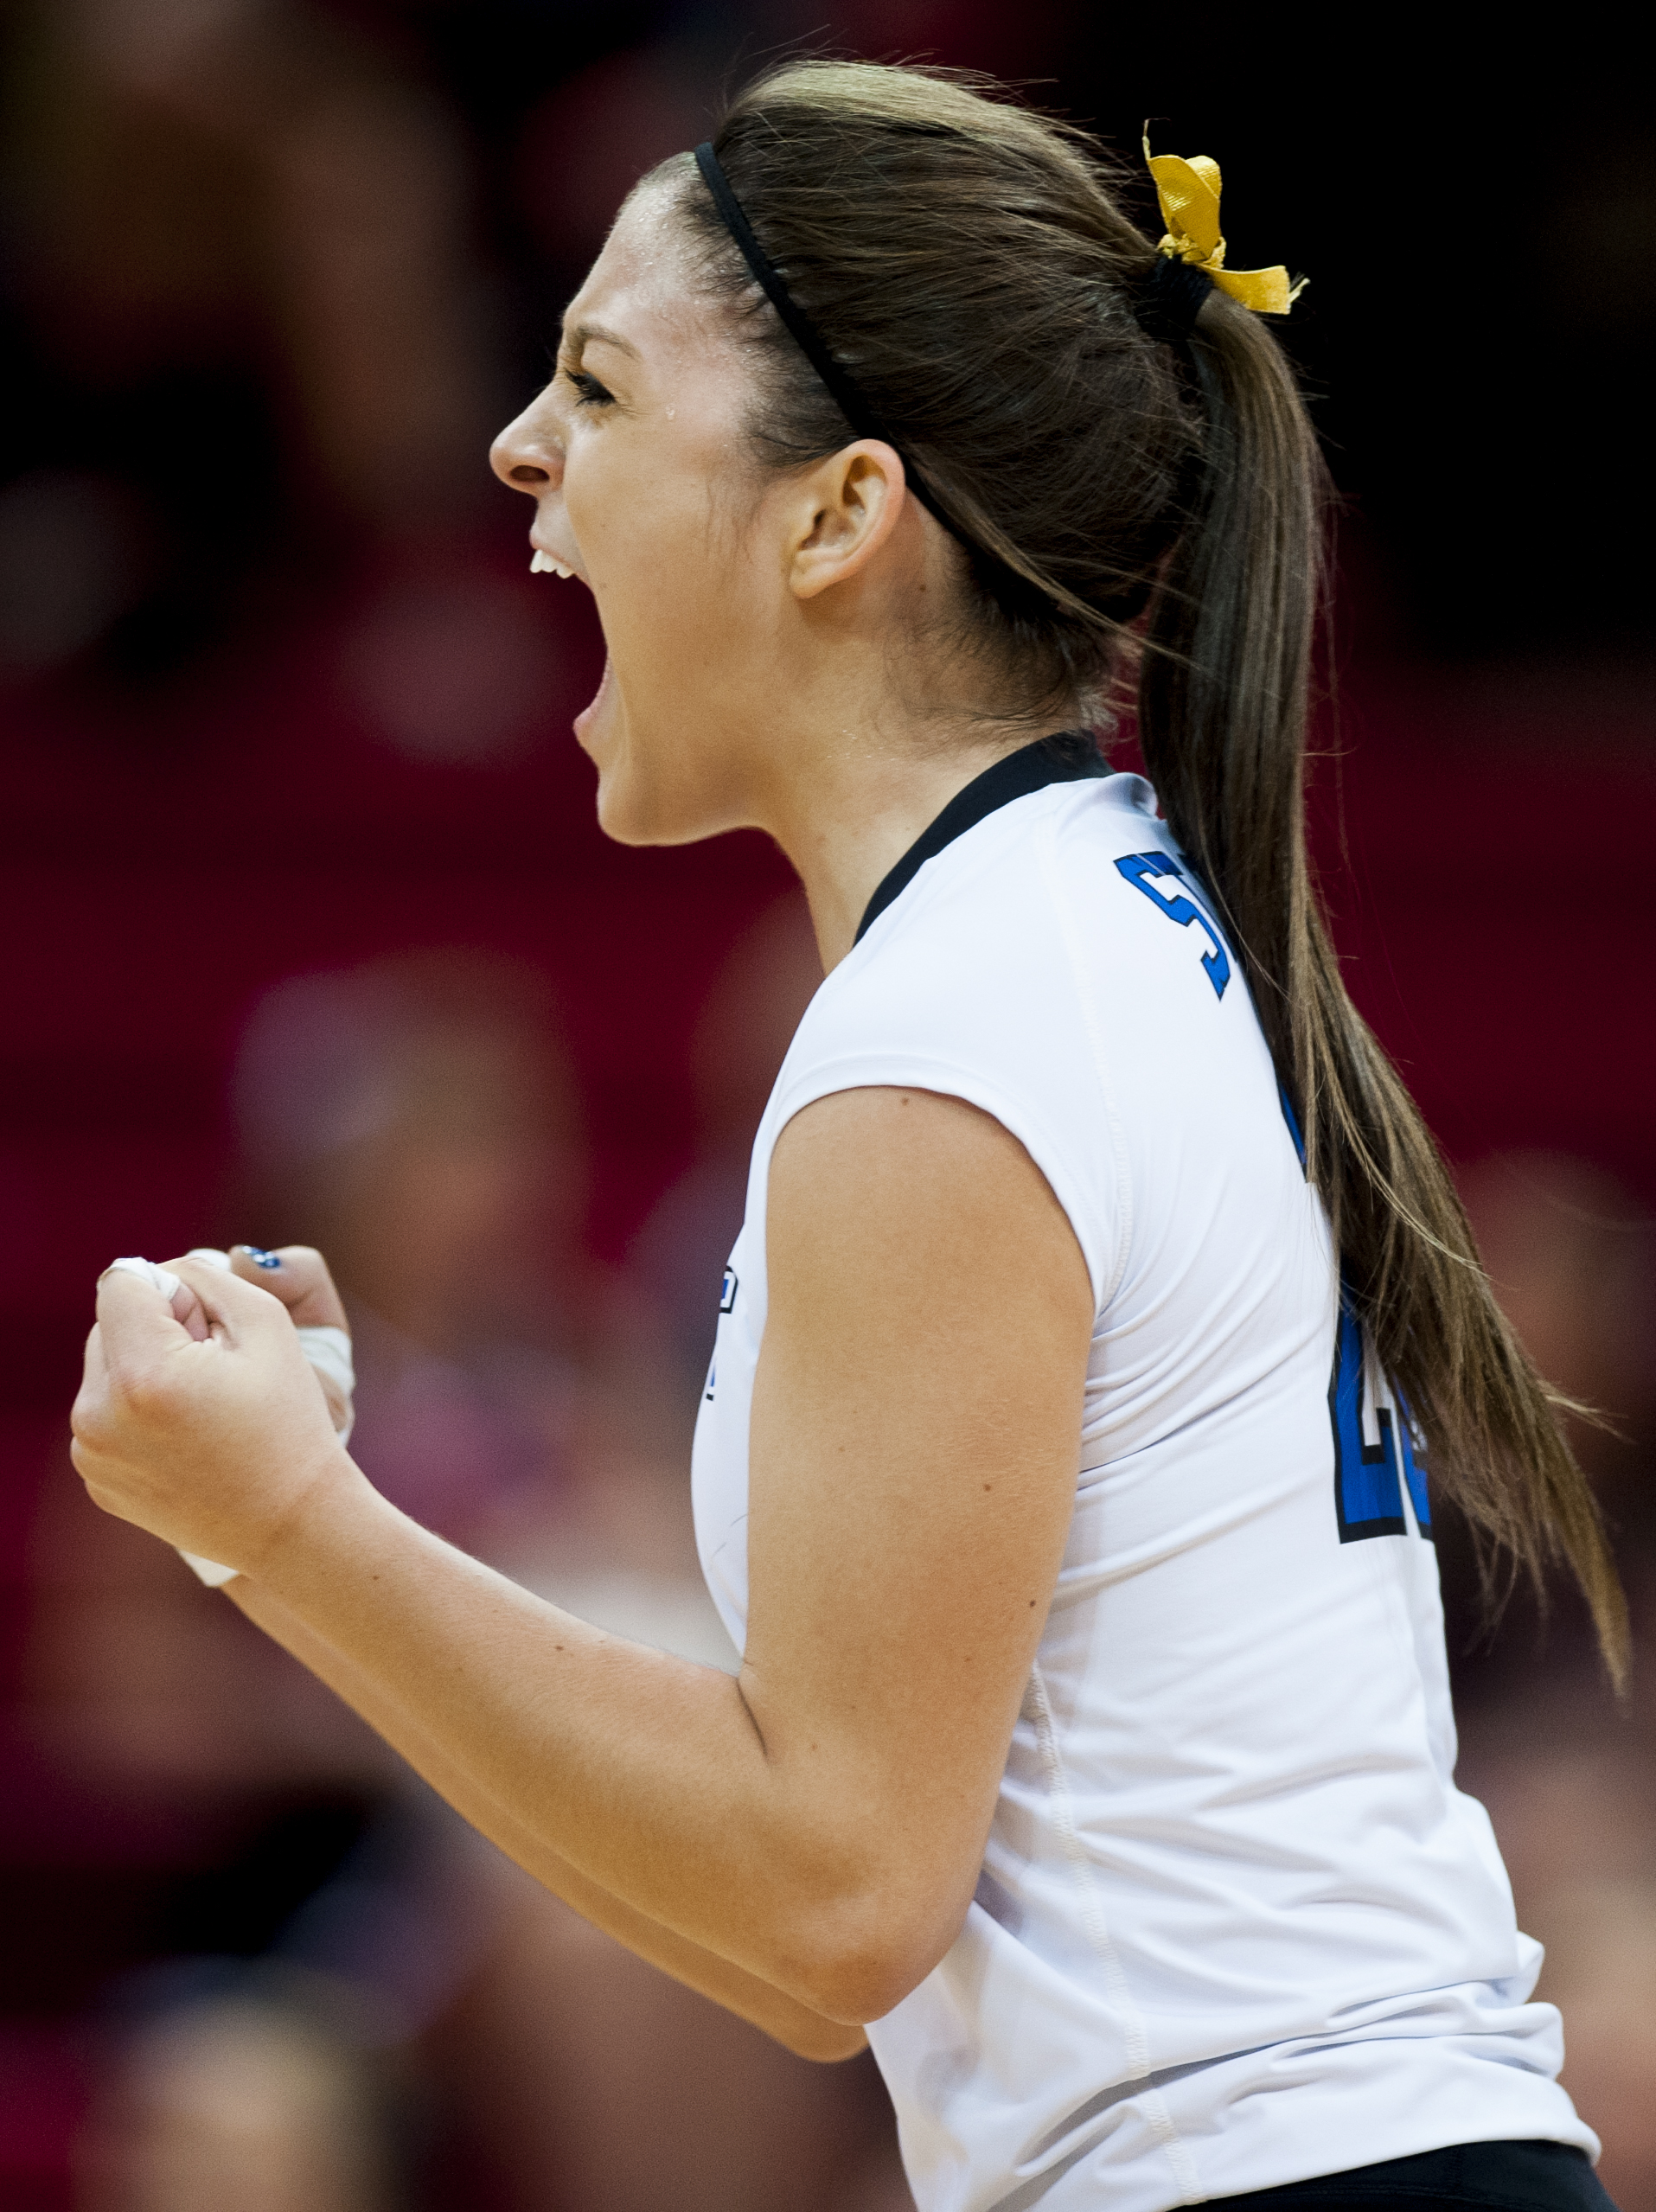 St. Cecilia's Shandra Farmer gets pumped after scoring a point against Stanton during the first set in the Class C-2 Championship game in Devaney Sports Center Saturday, November 14, 2015 in Lincoln, Nebraska.